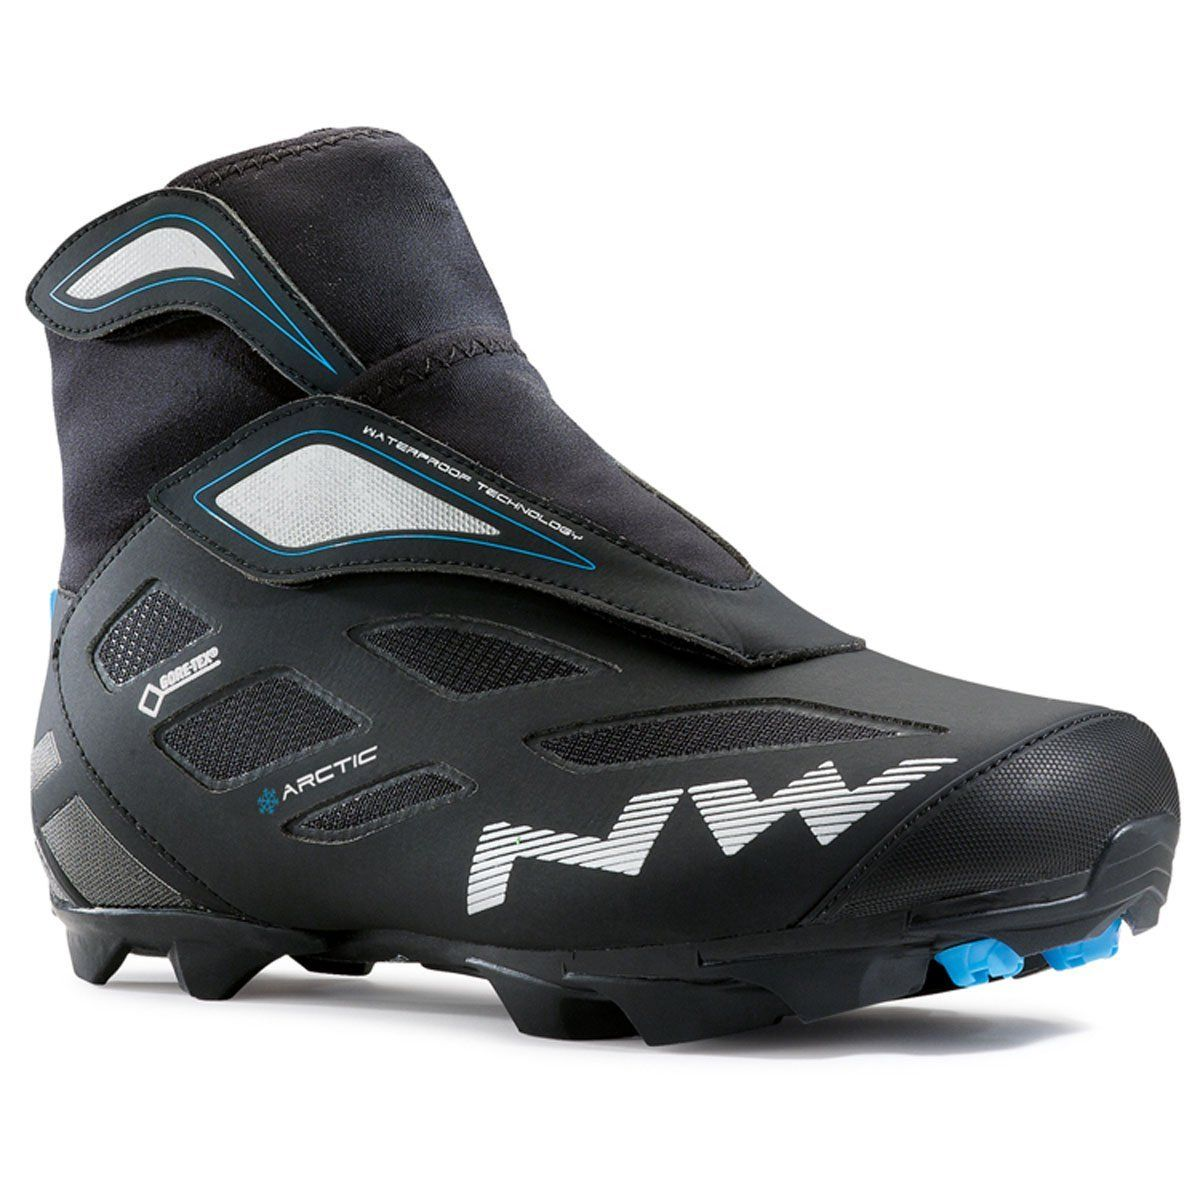 Northwave Celsius Arctic 2 GTX Black Blue Shoes 2016 *** You